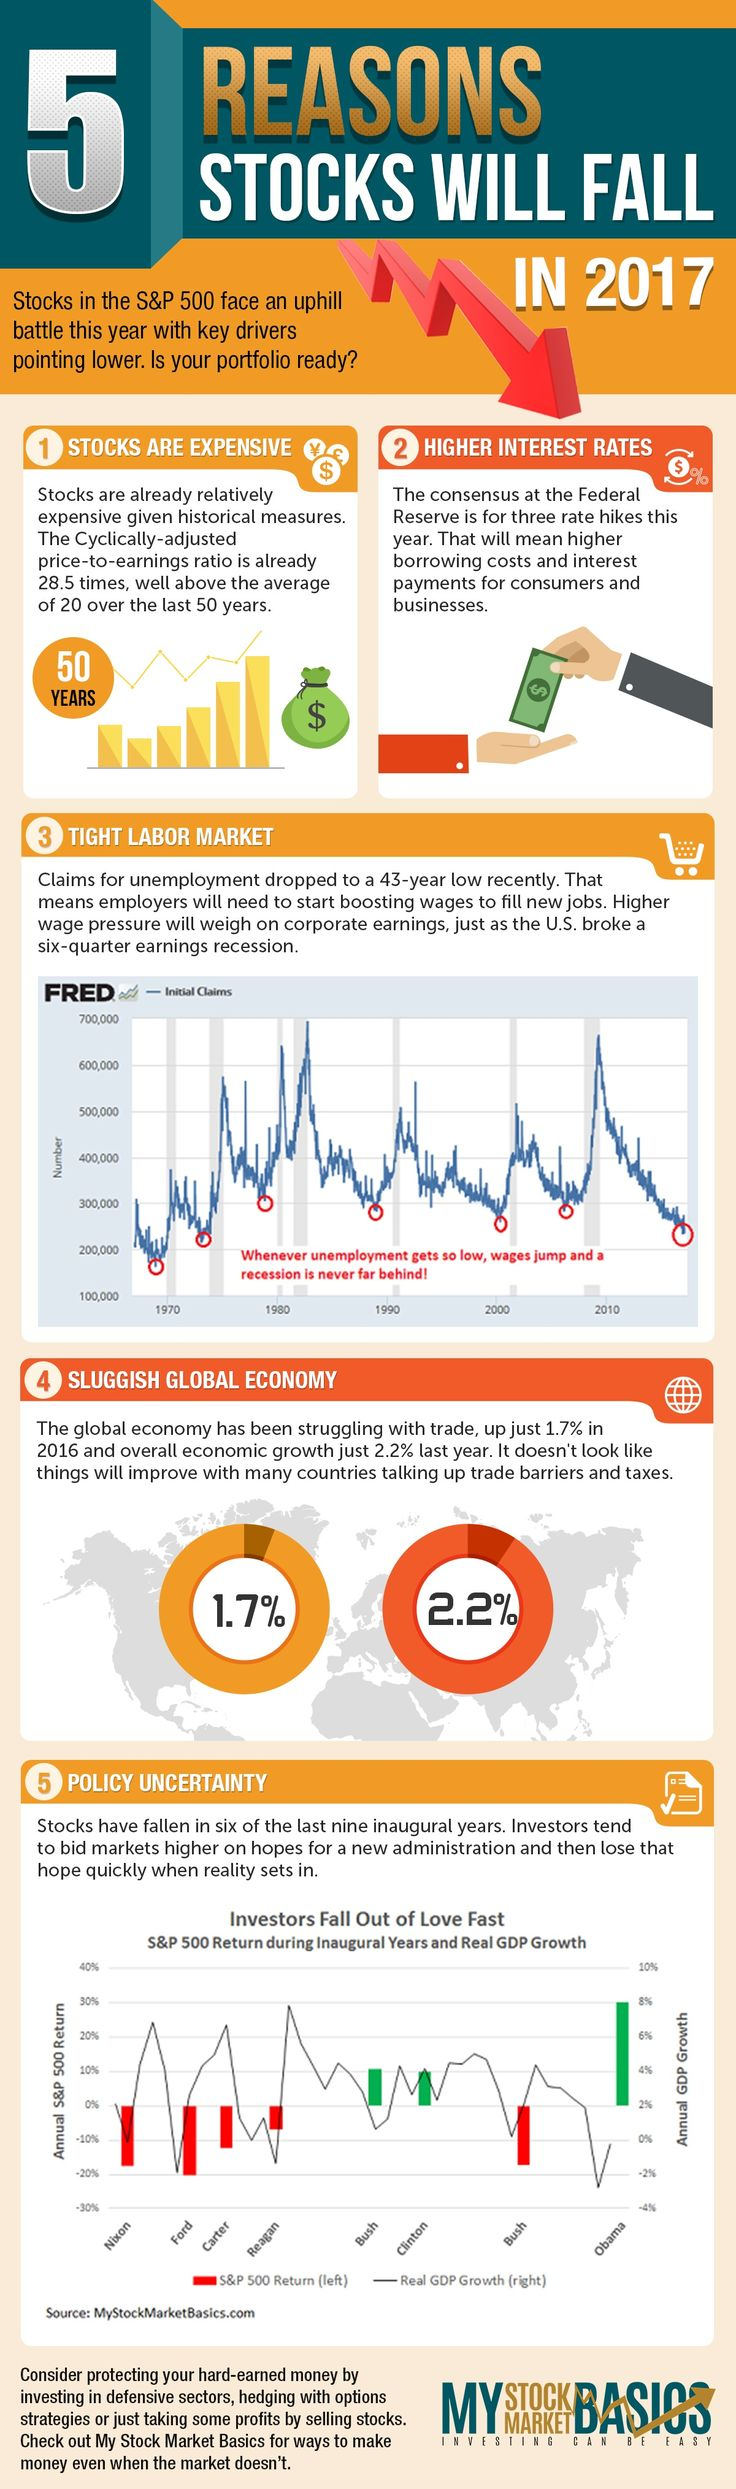 Just found this stock market infographic and glad I did. Some smart advice for investing and could save investors a lot of money if we do see a stock market crash this year. Better safe than sorry.